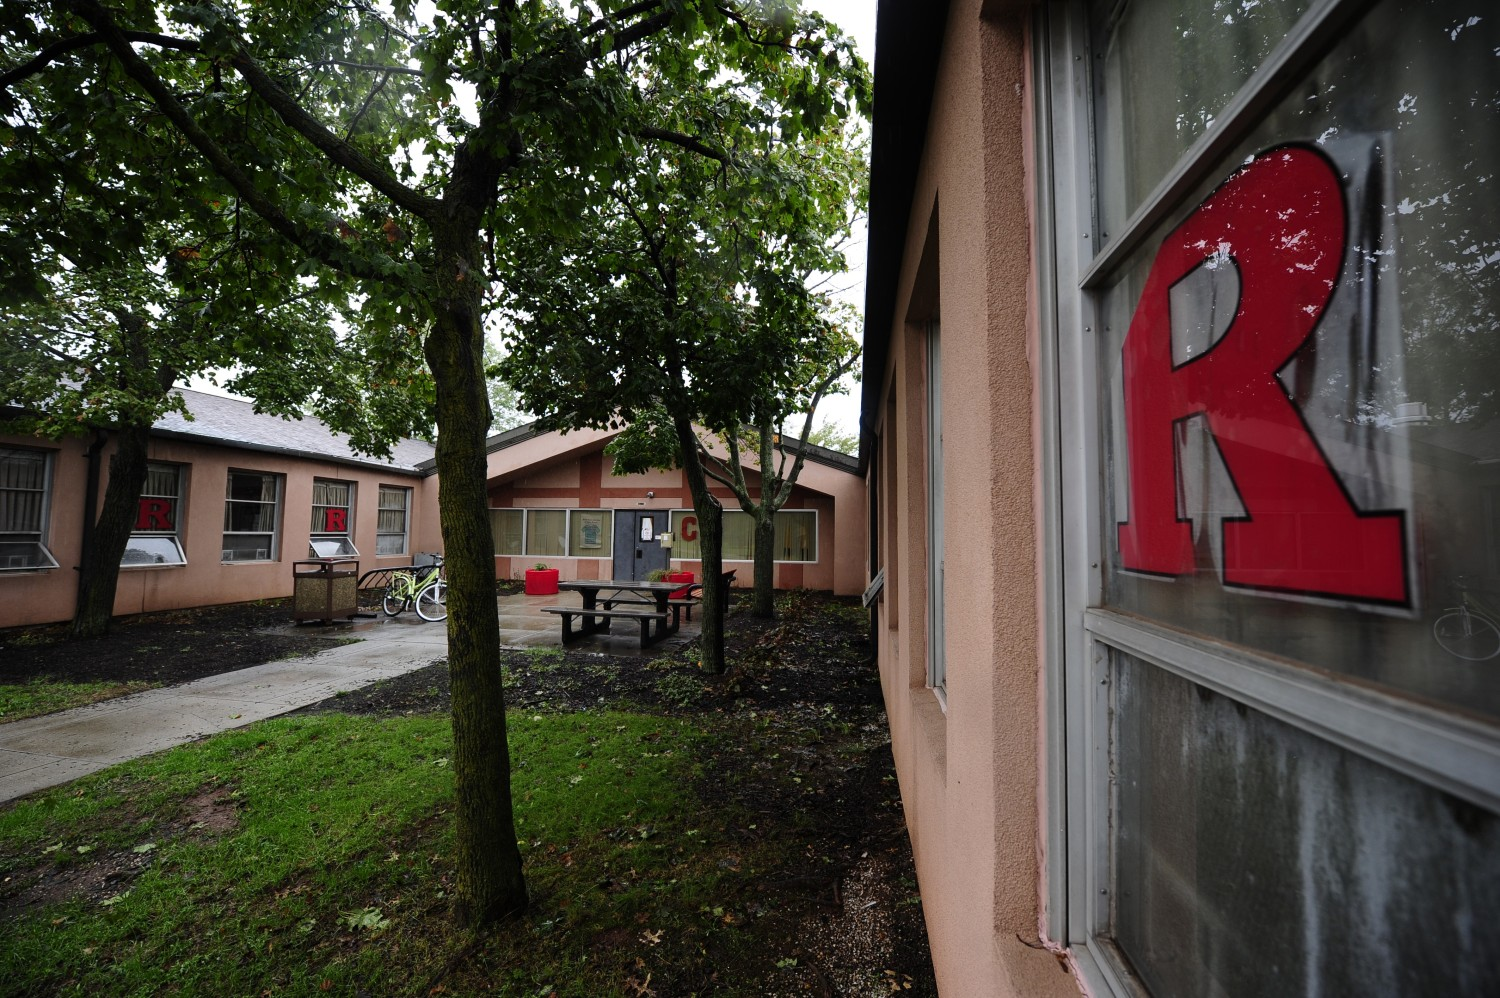 Man Enters Rutgers Dorm Room, Touches Sleeping Student, Police Say